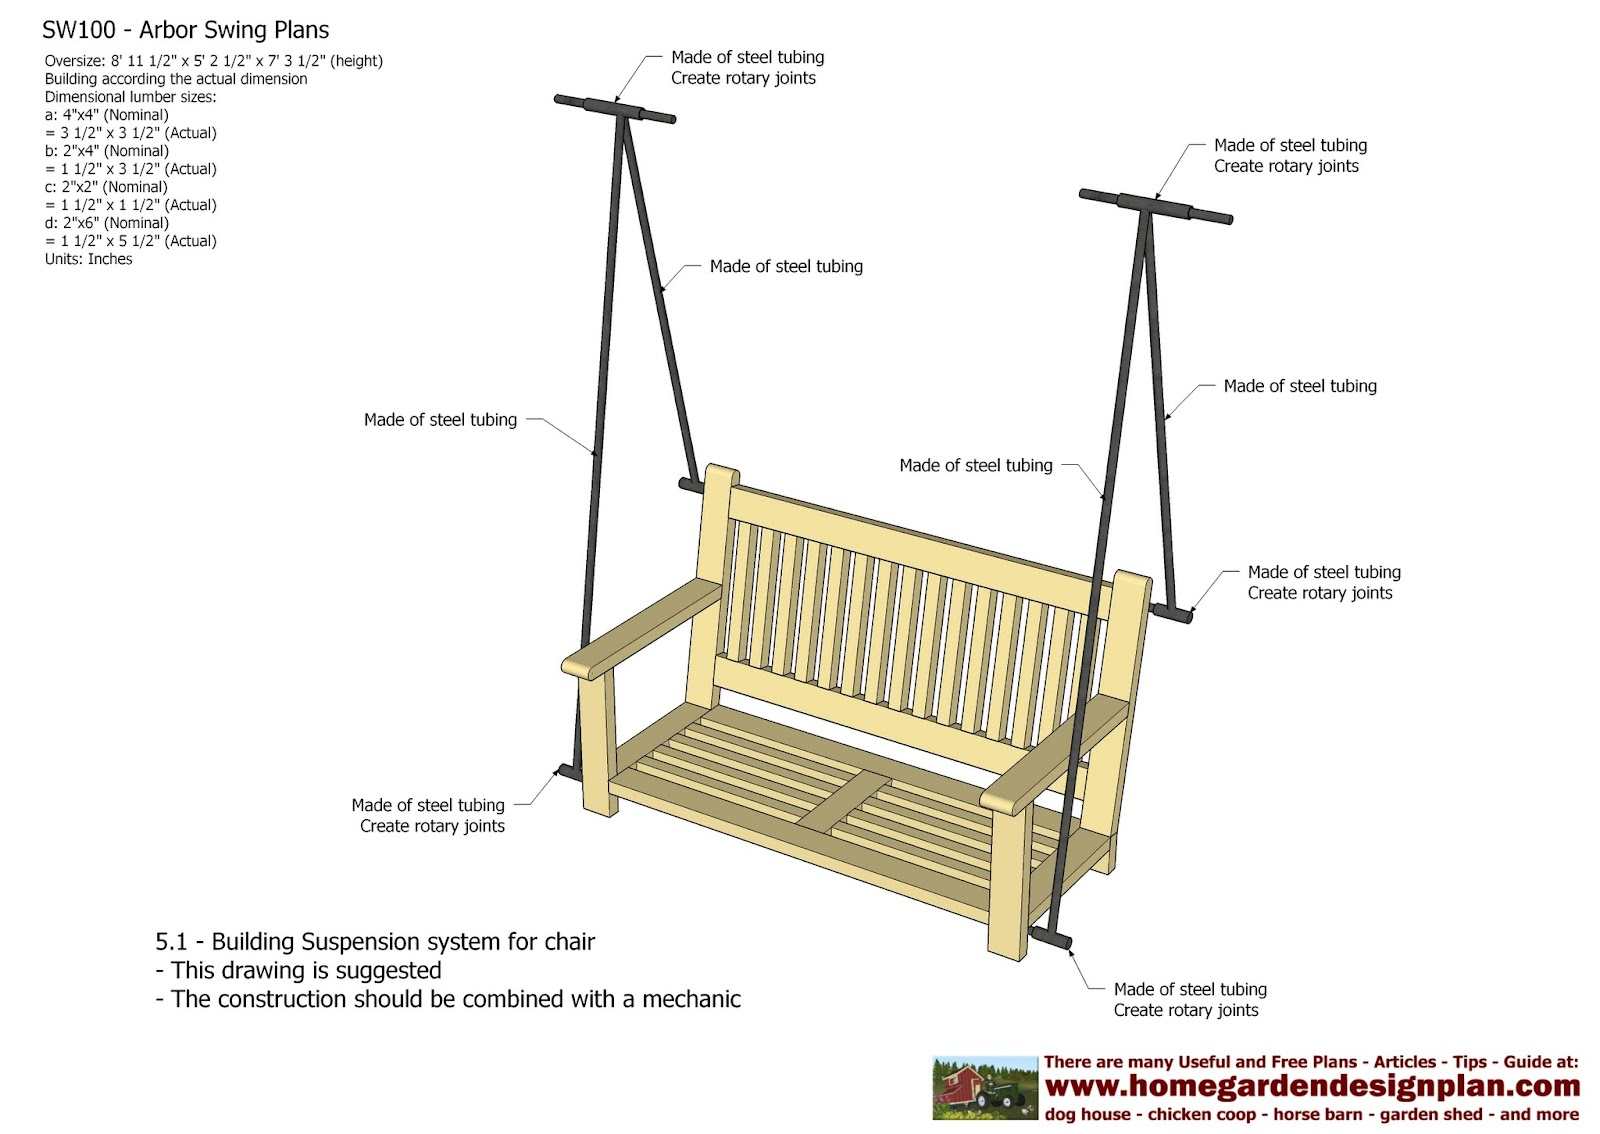 Home garden plans sw100 arbor swing plans swing for Woodworking plans porch swing